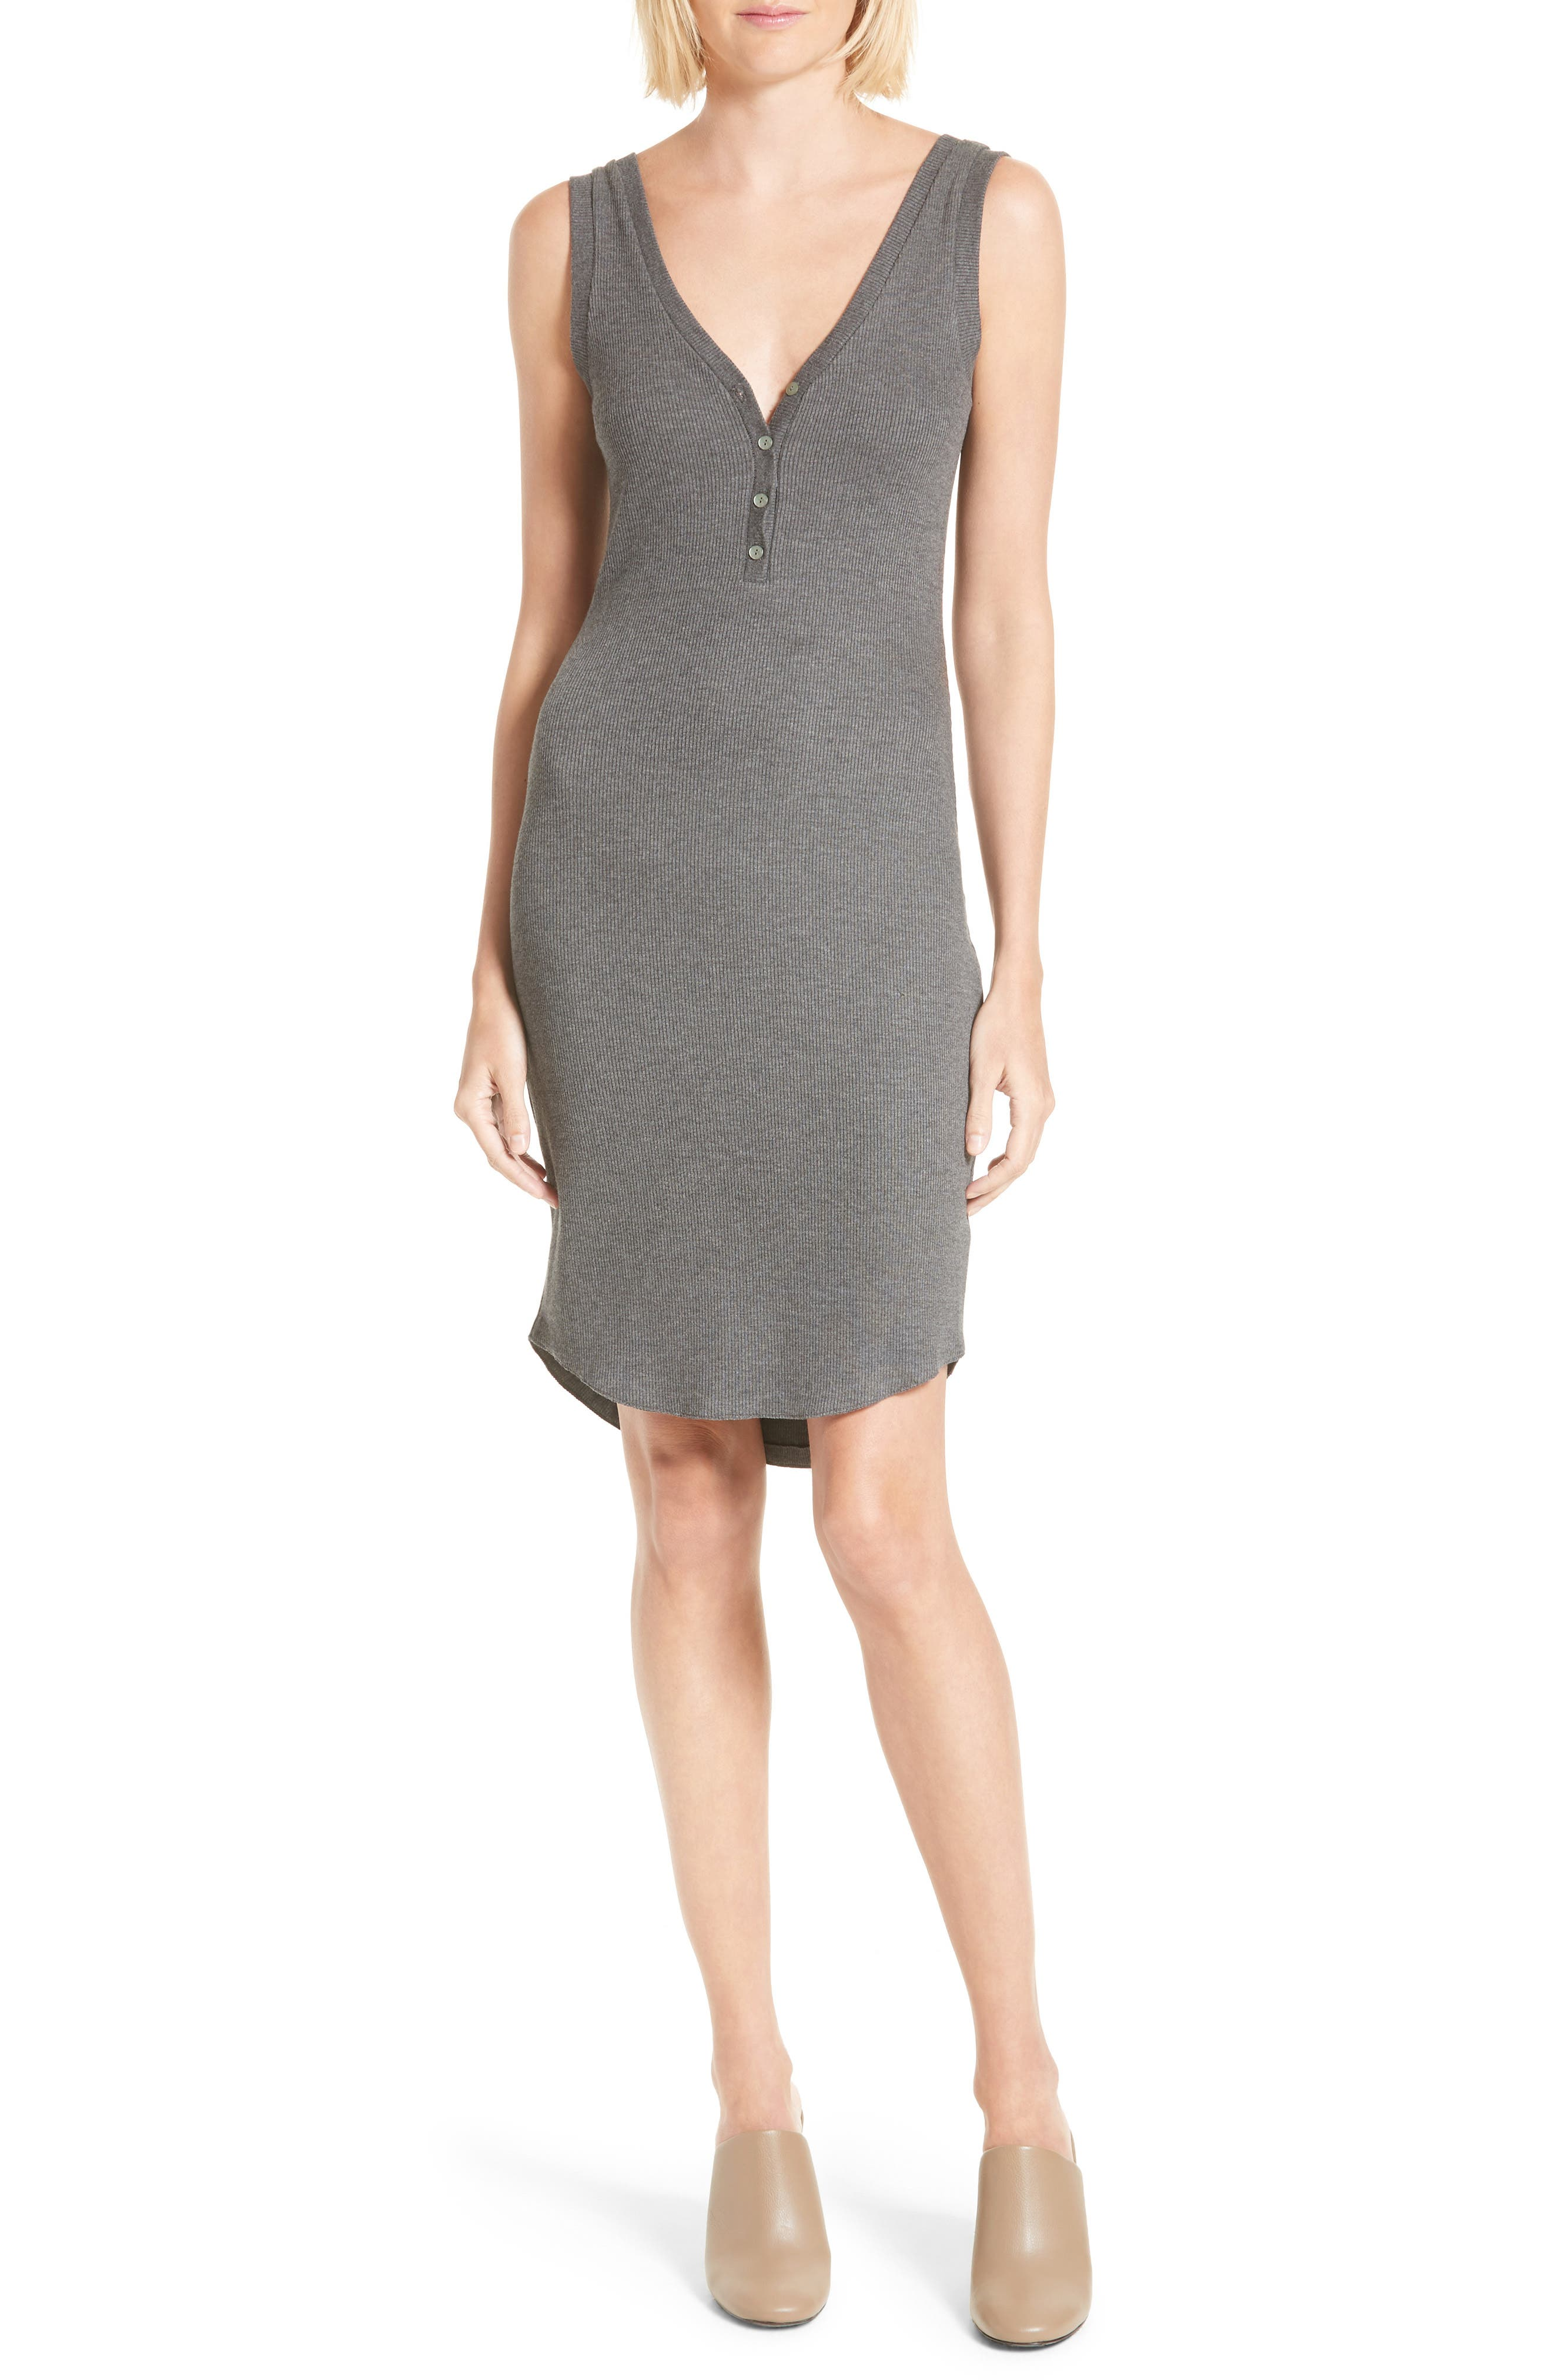 Alternate Image 1 Selected - L'AGENCE Everly Henley Tank Dress